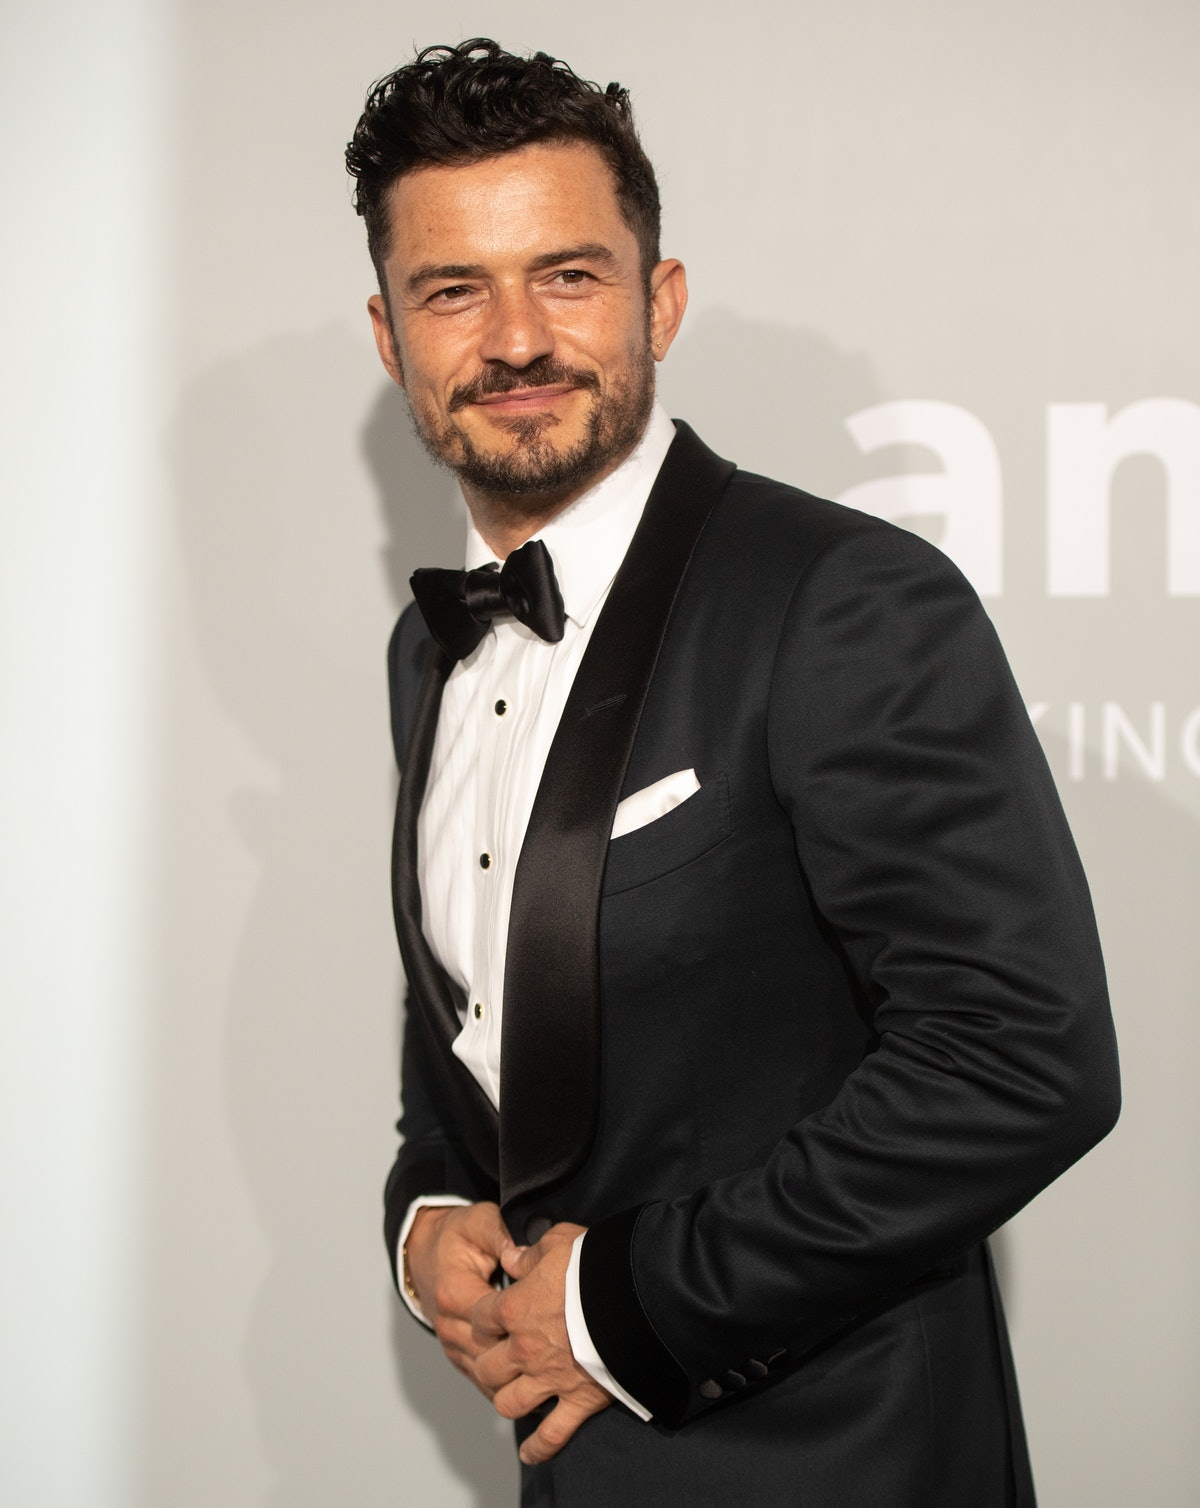 Orlando Bloom's skinny-dipping Instagram is prompting funny reactions on Twitter.